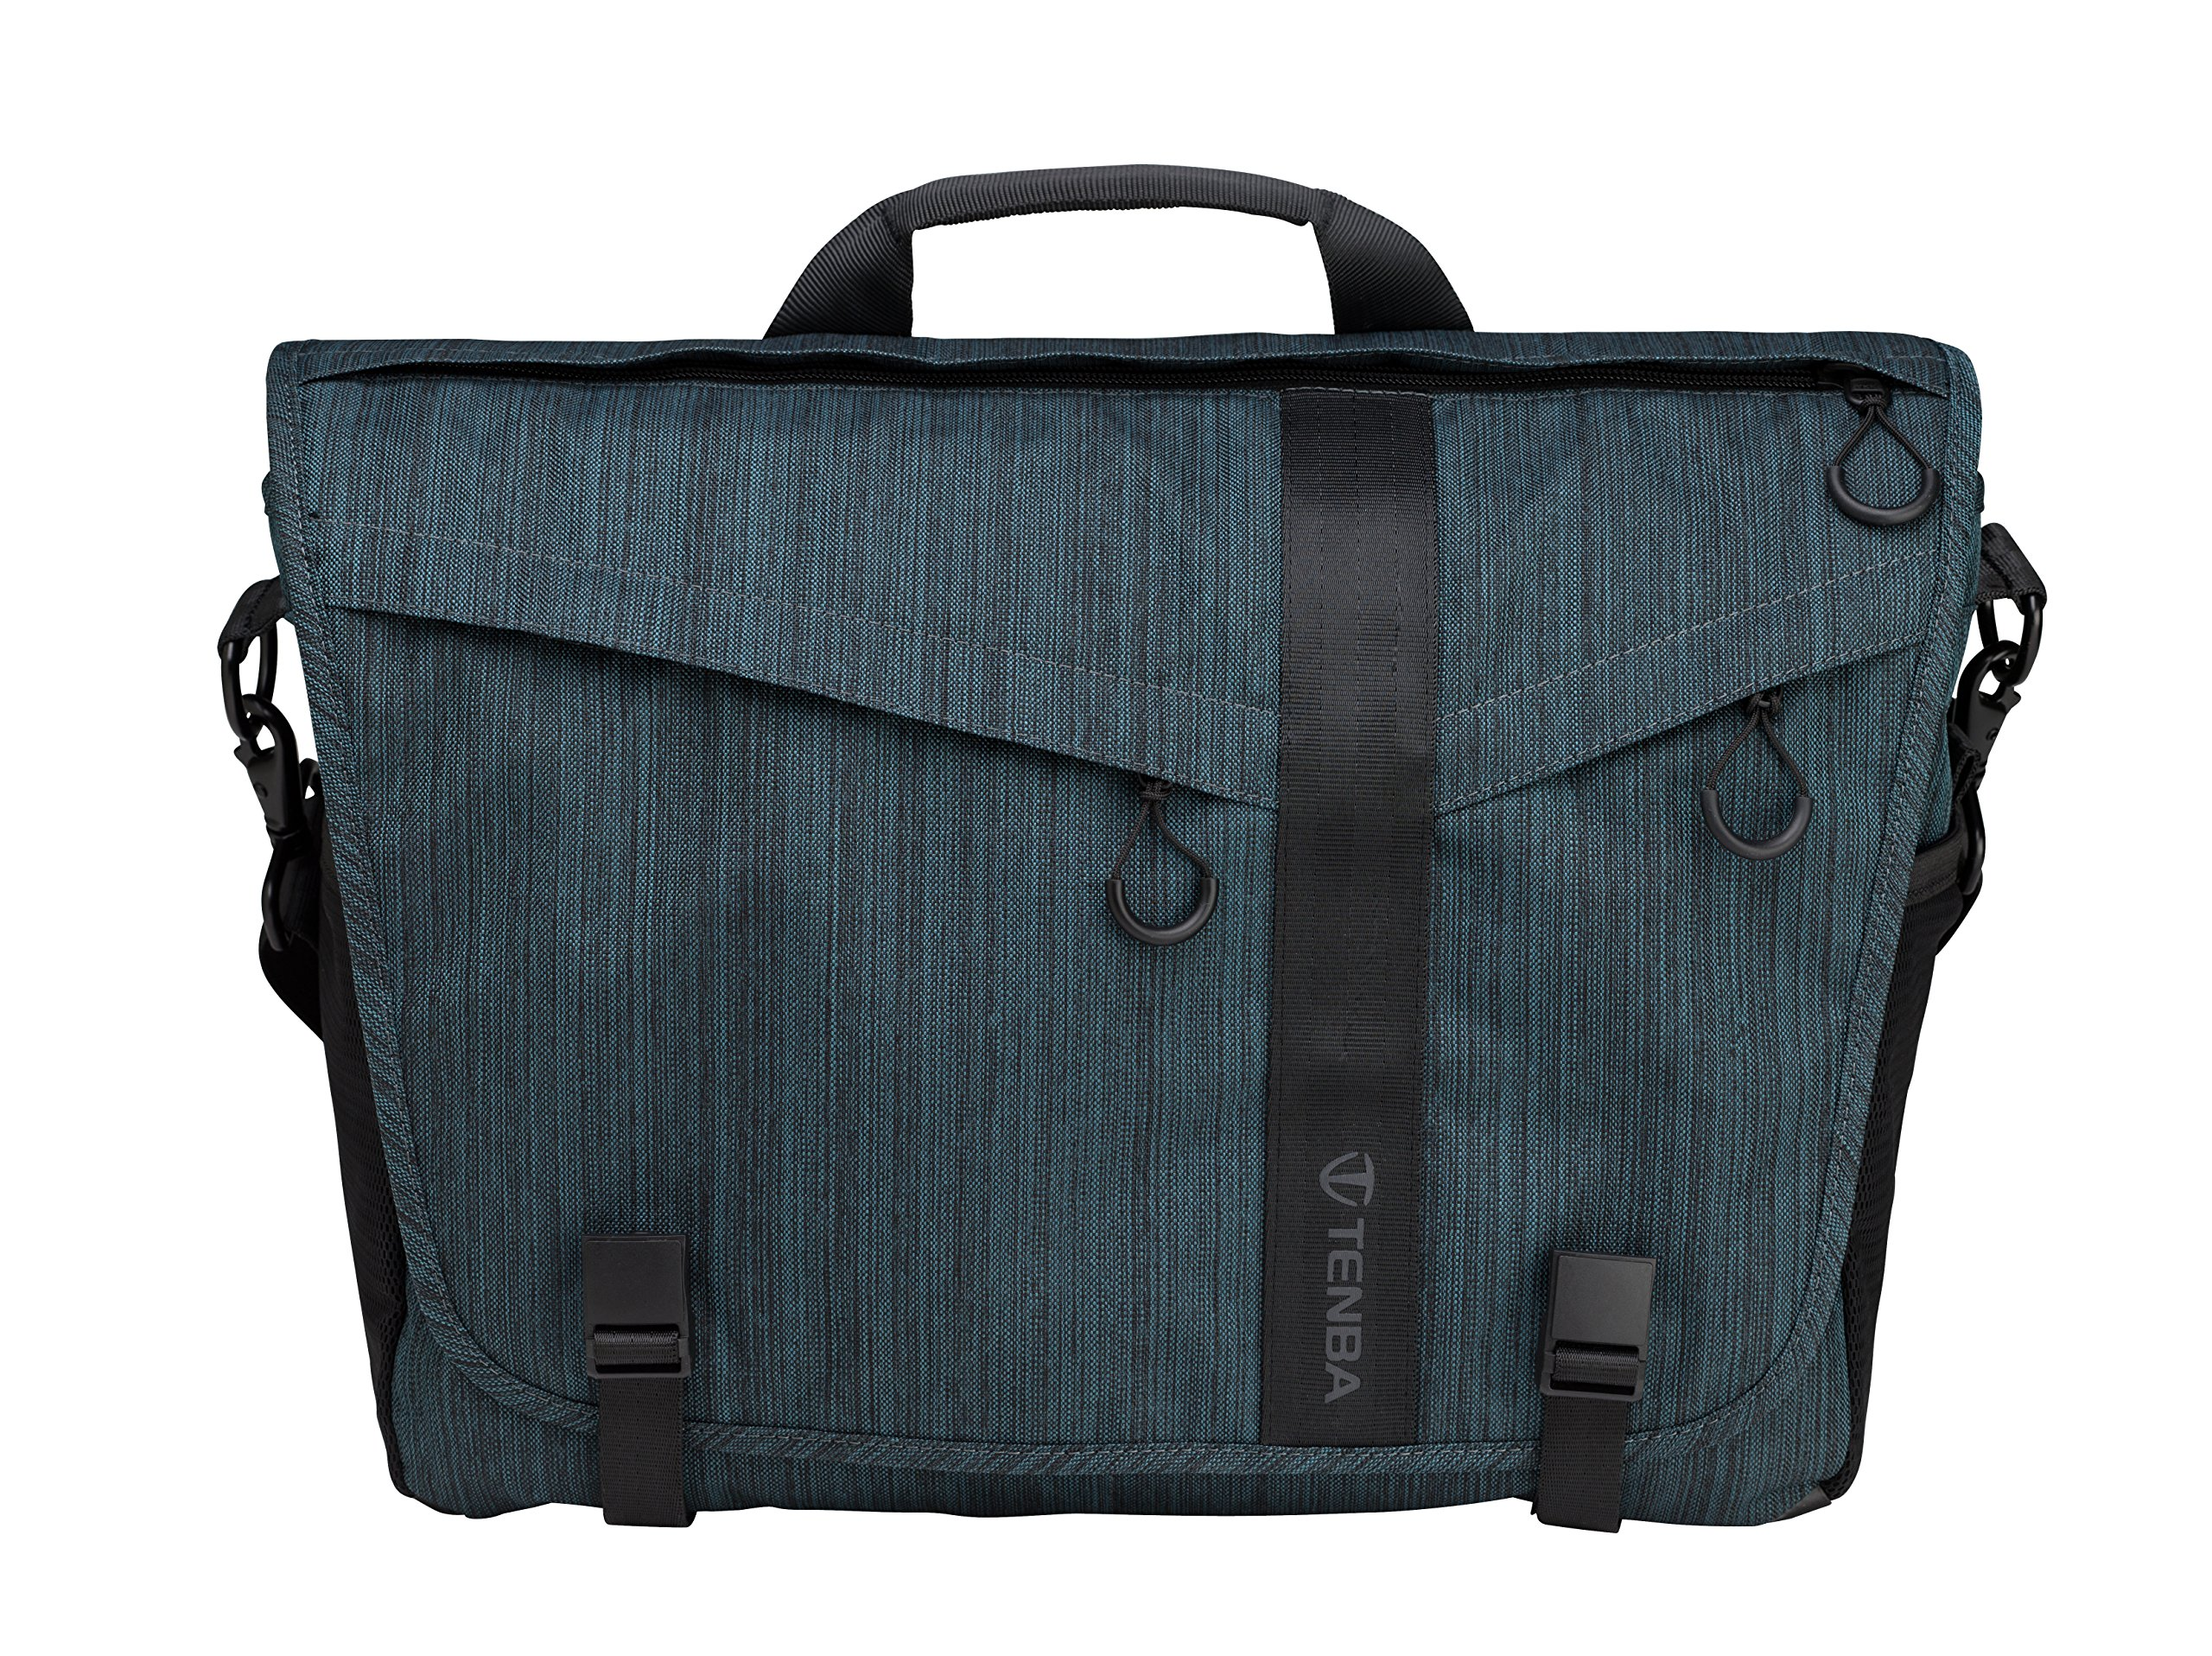 Tenba Messenger DNA 15 Camera and Laptop Bag - Cobalt (638-383)